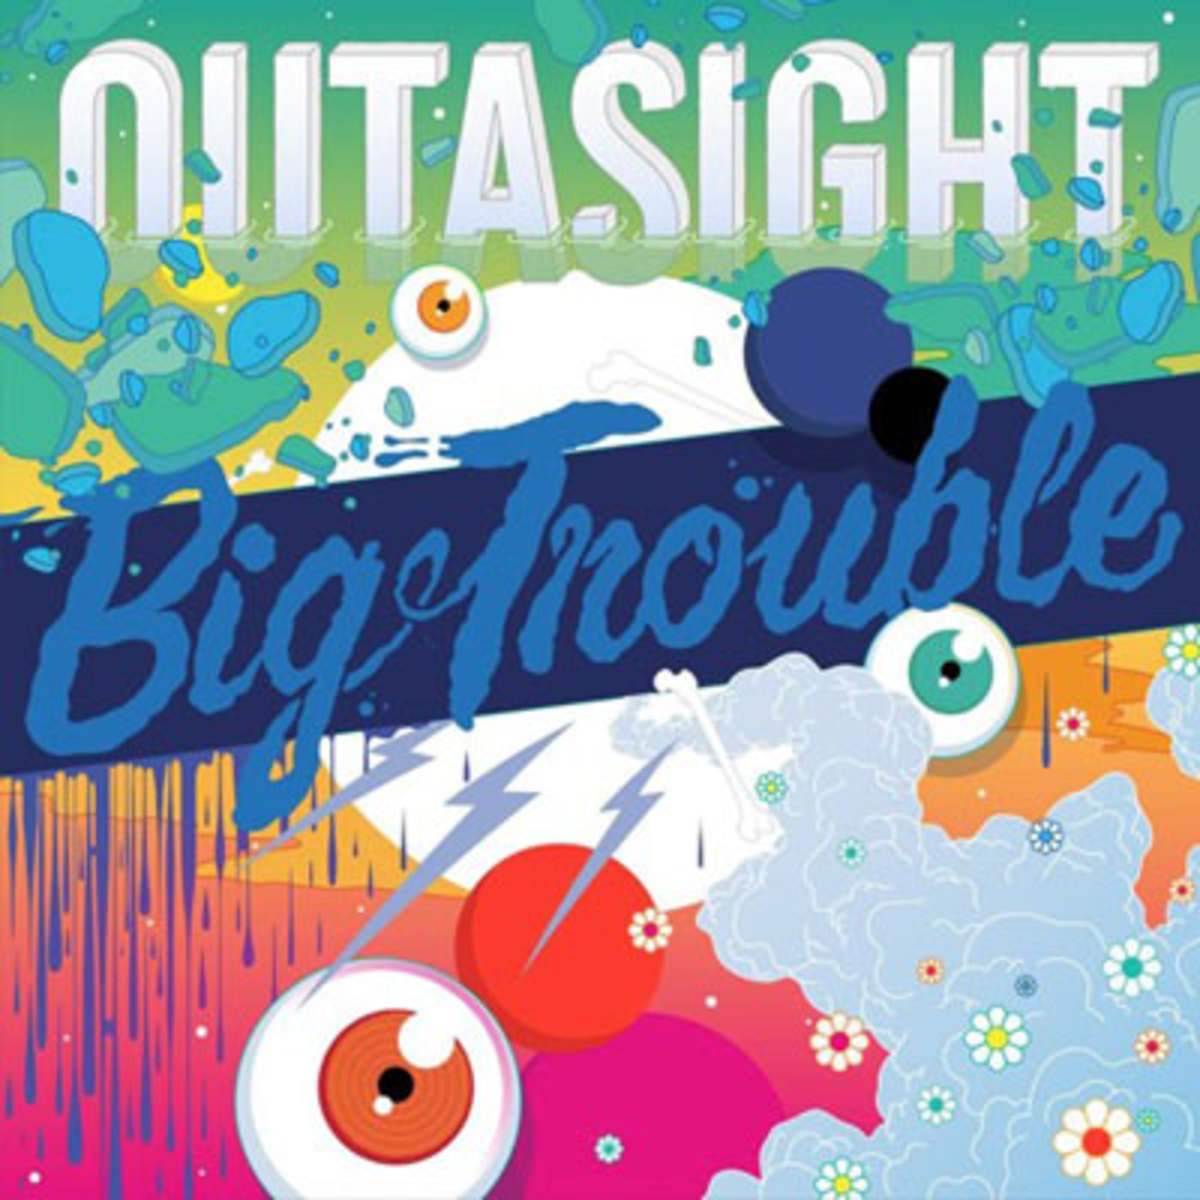 outasight-big-trouble.jpg